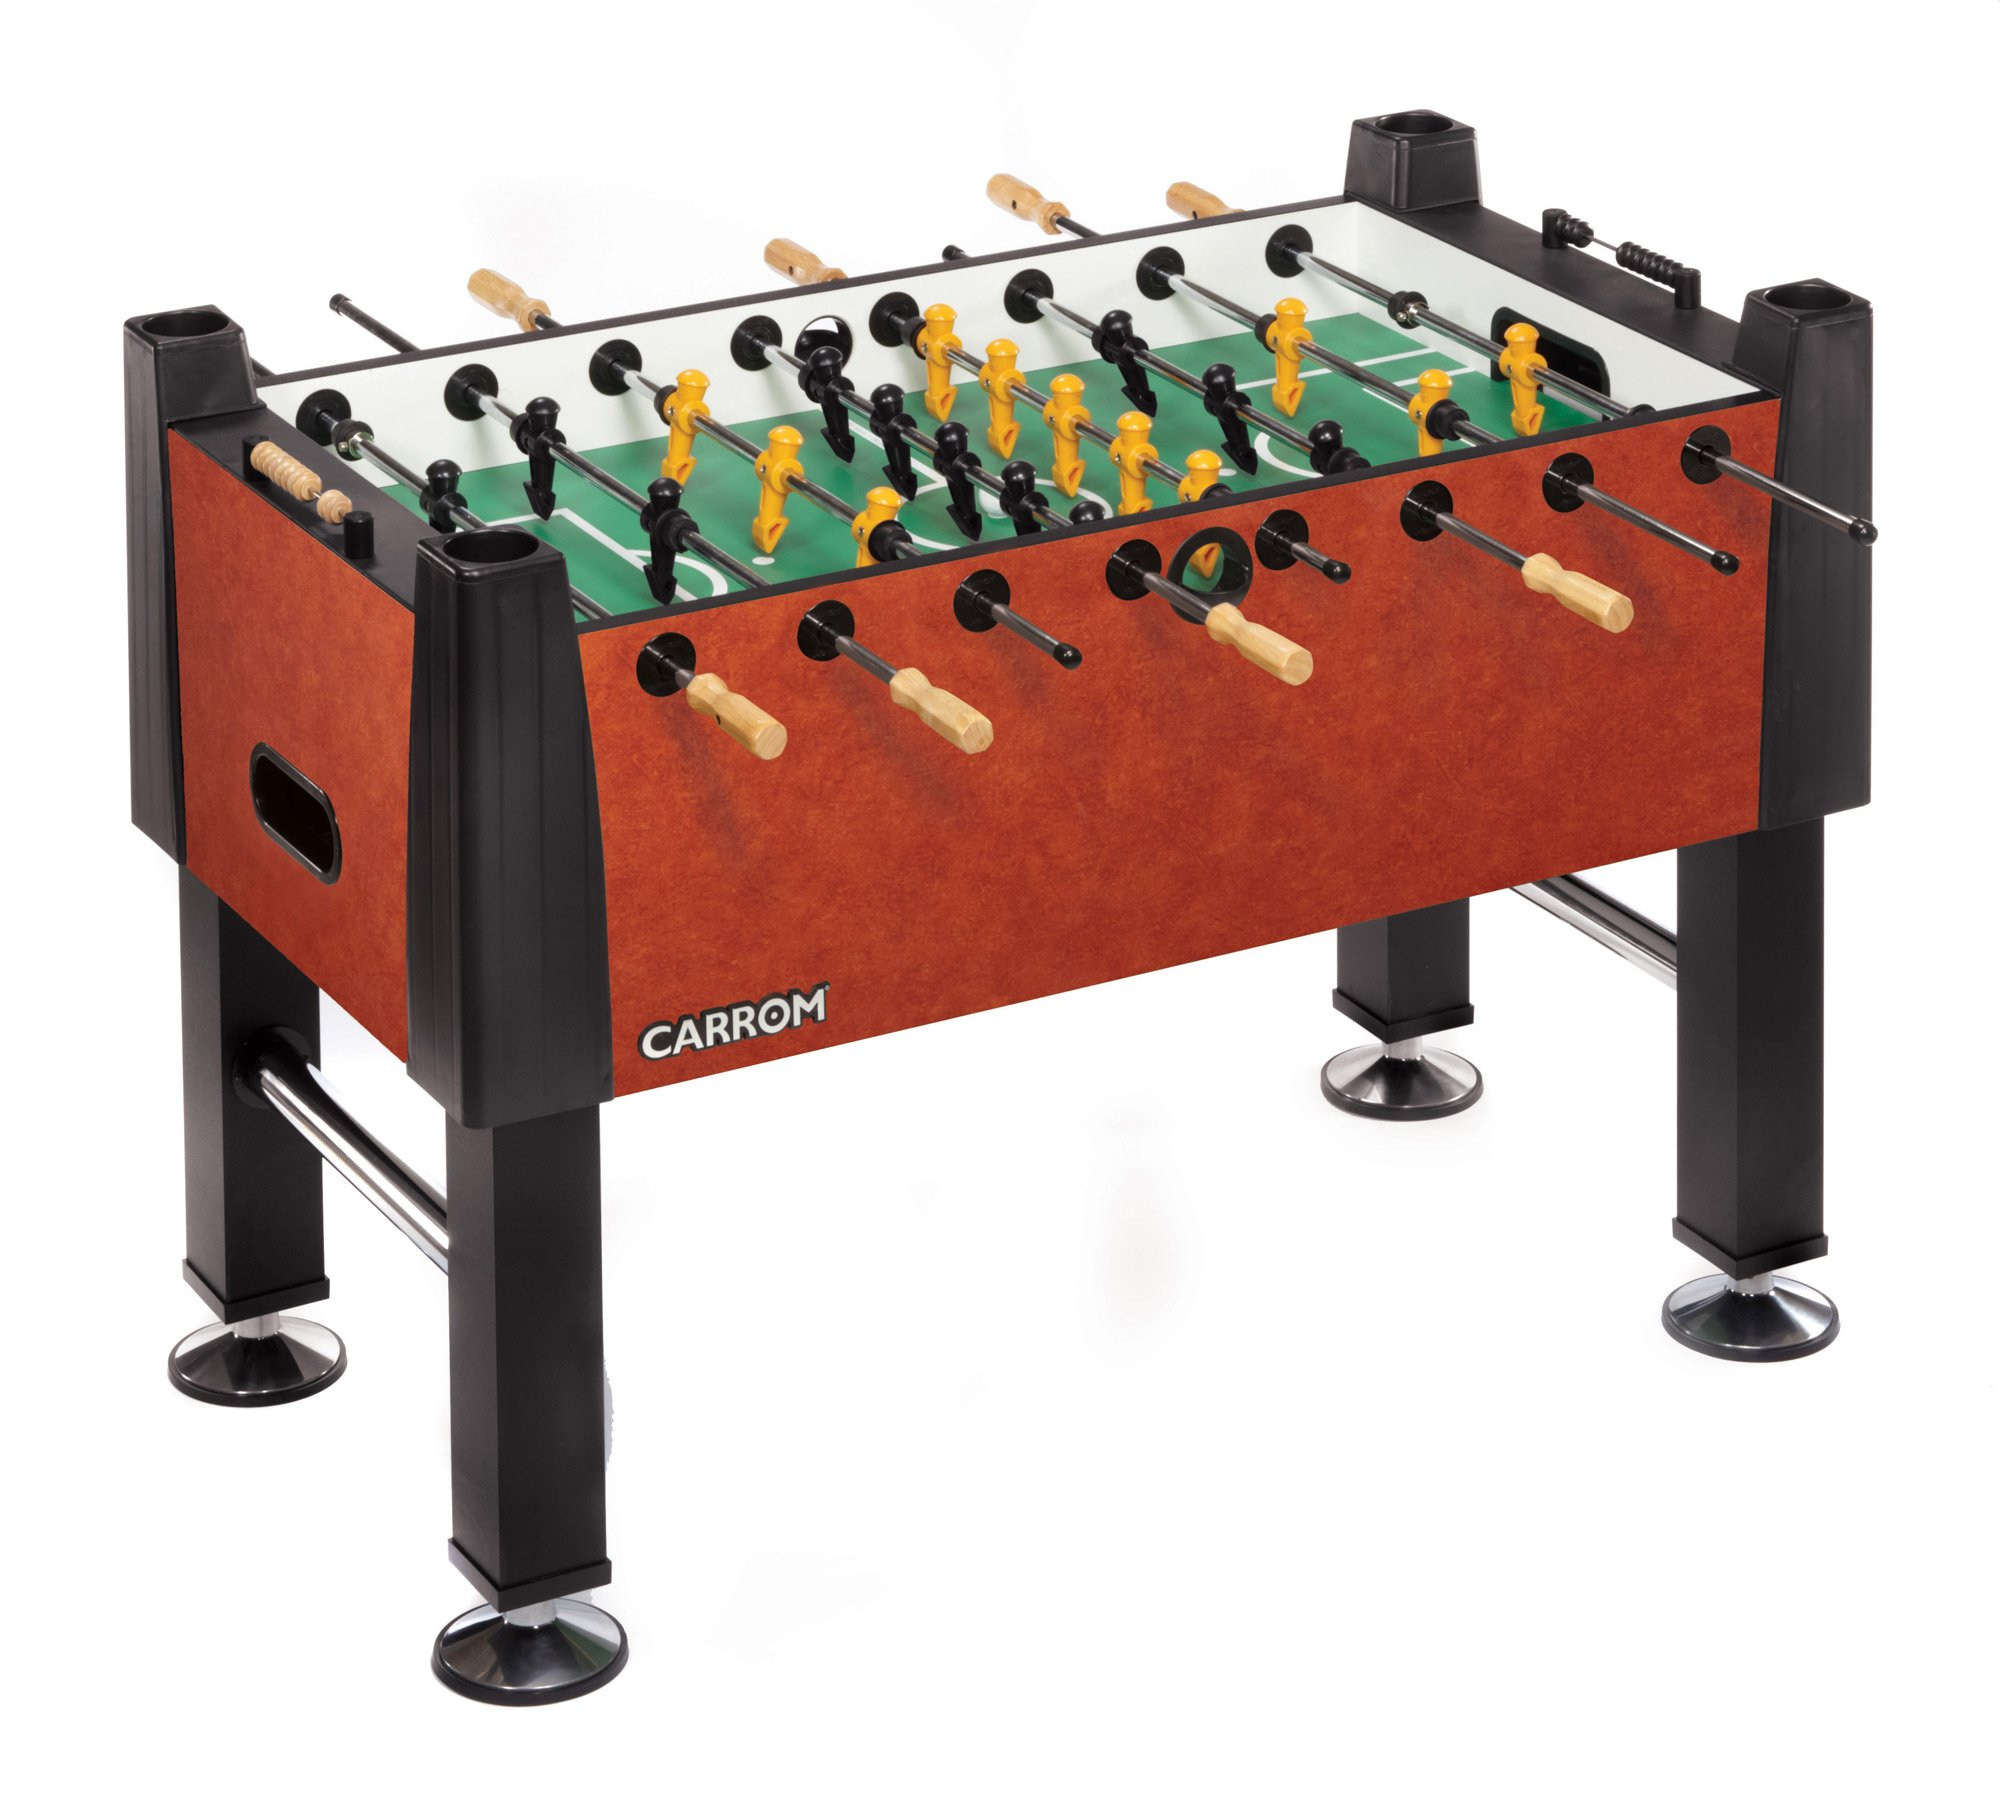 Carrom Signature Foosball, Moroccan by Carrom